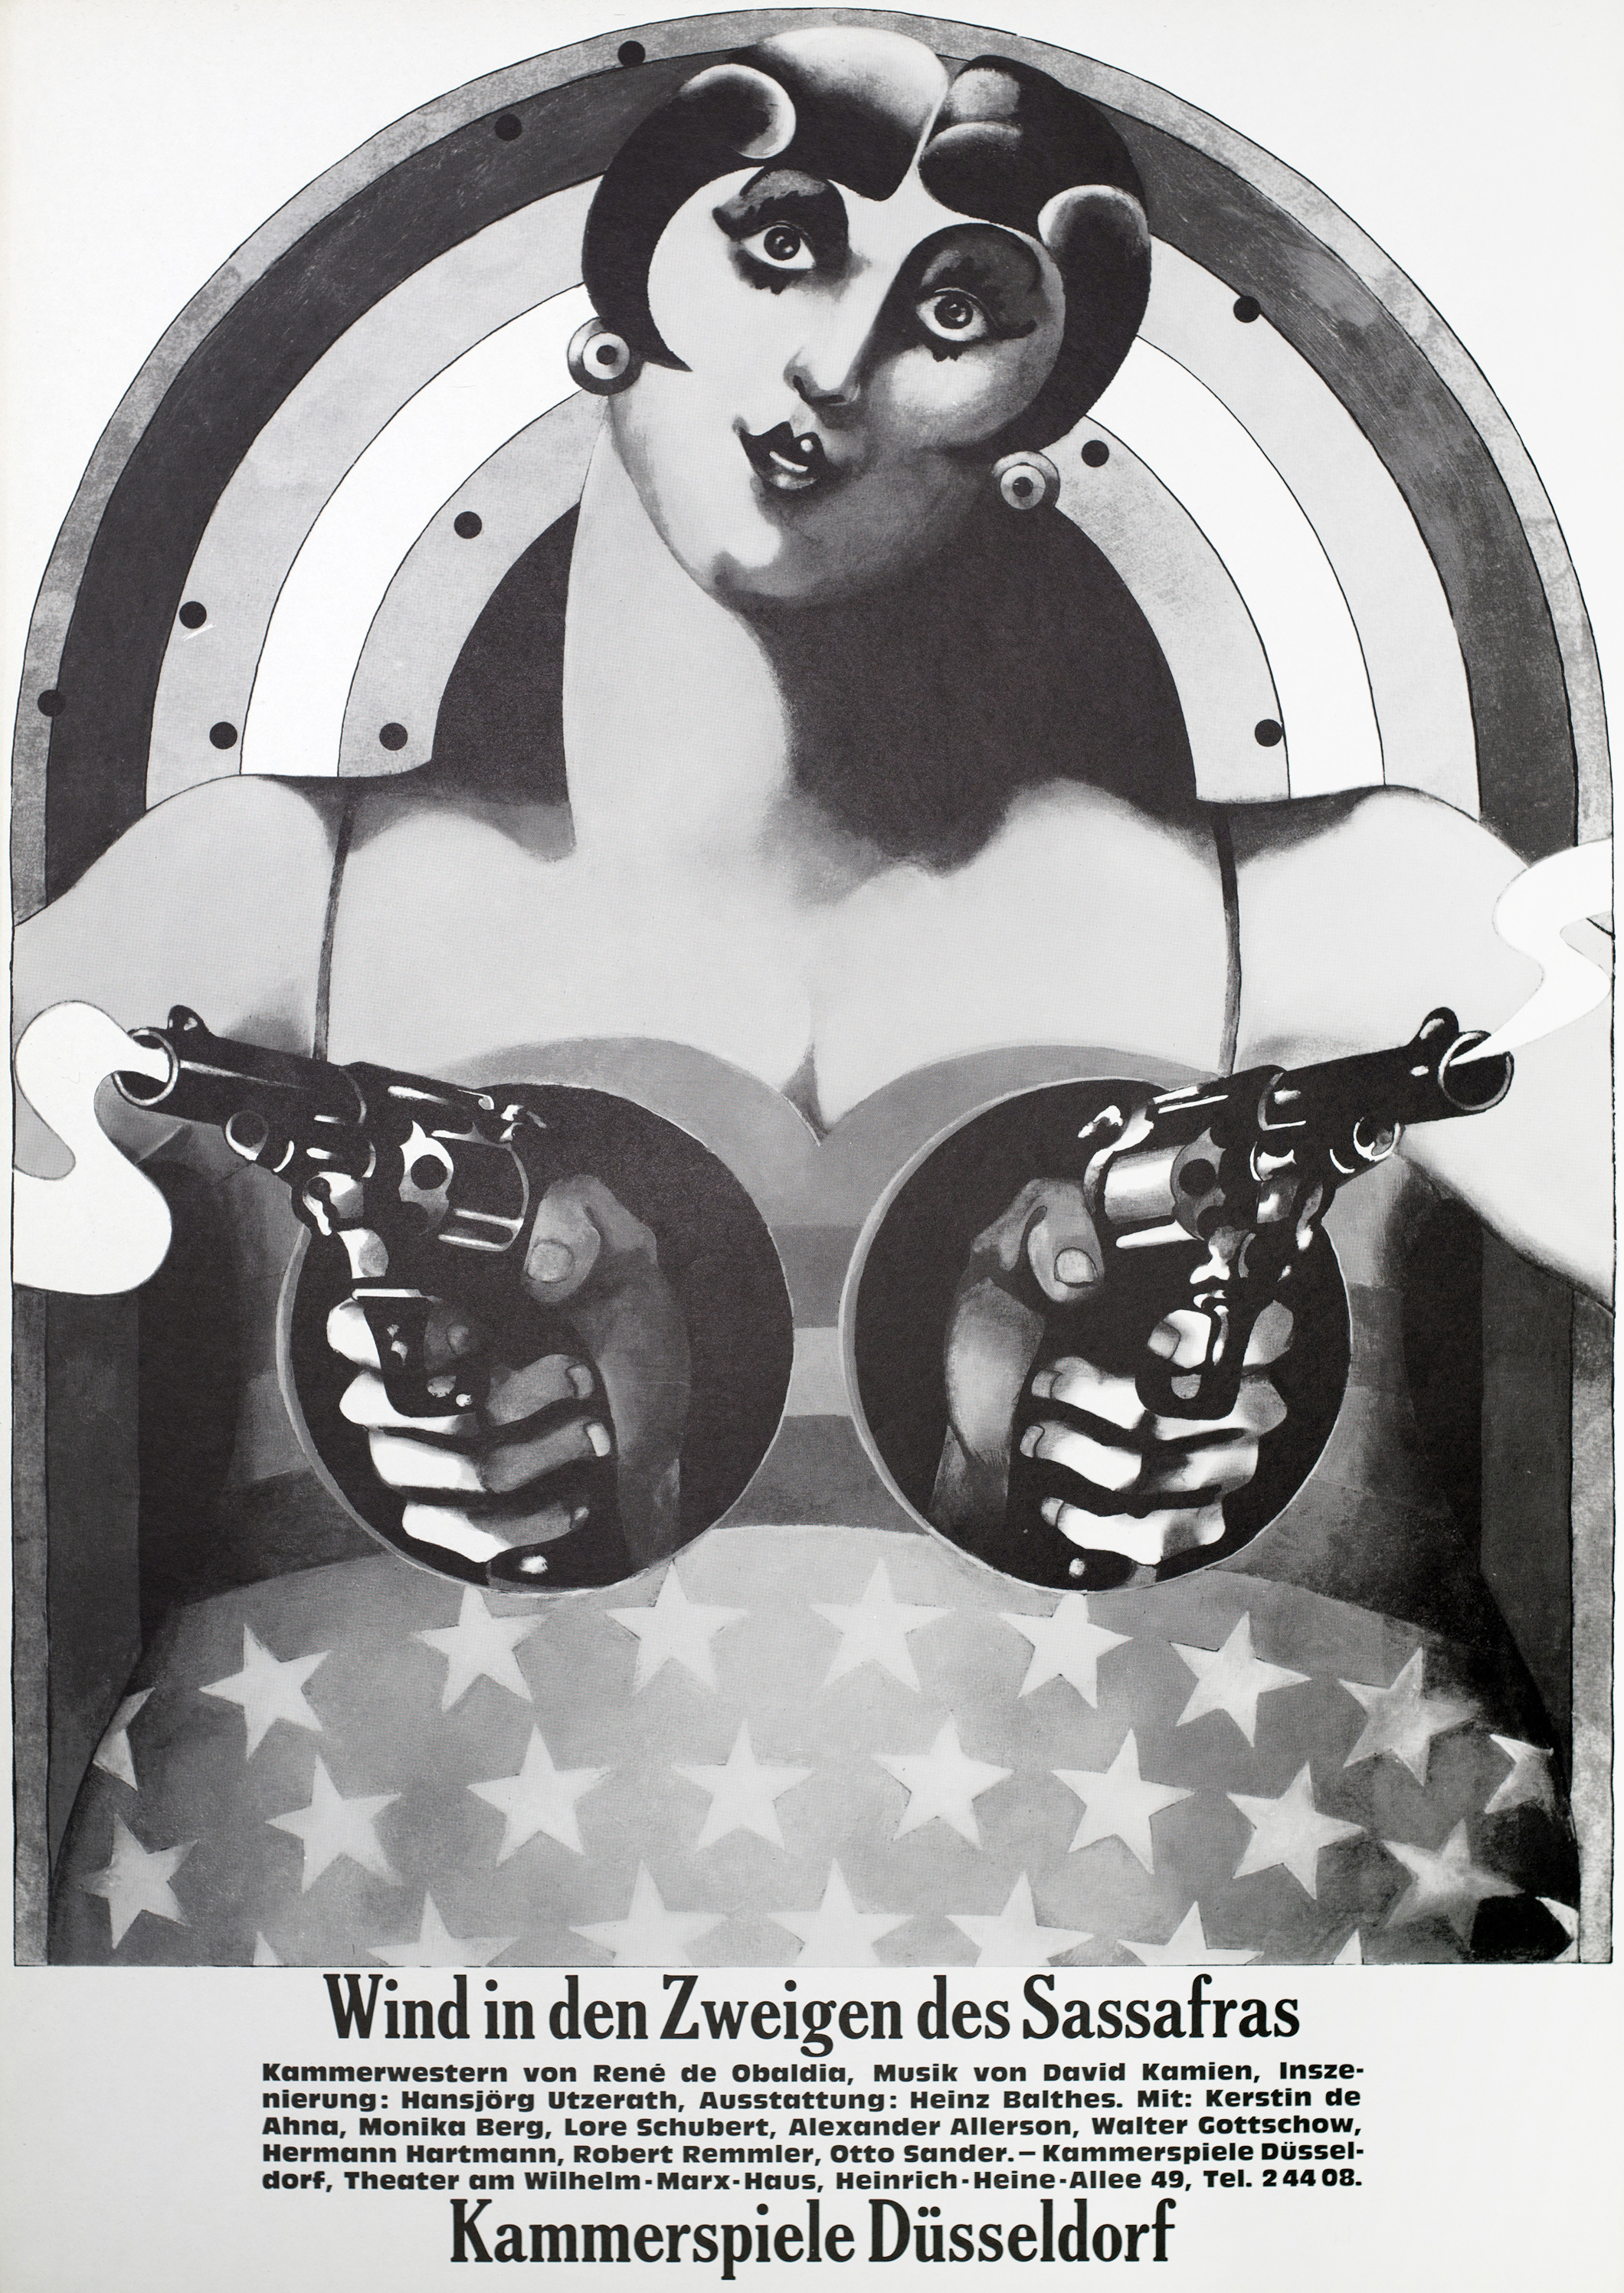 Black and white illustration of a cutout of a woman, with two hands holding smoking pistols extend out of holes cut out where her breasts would be.